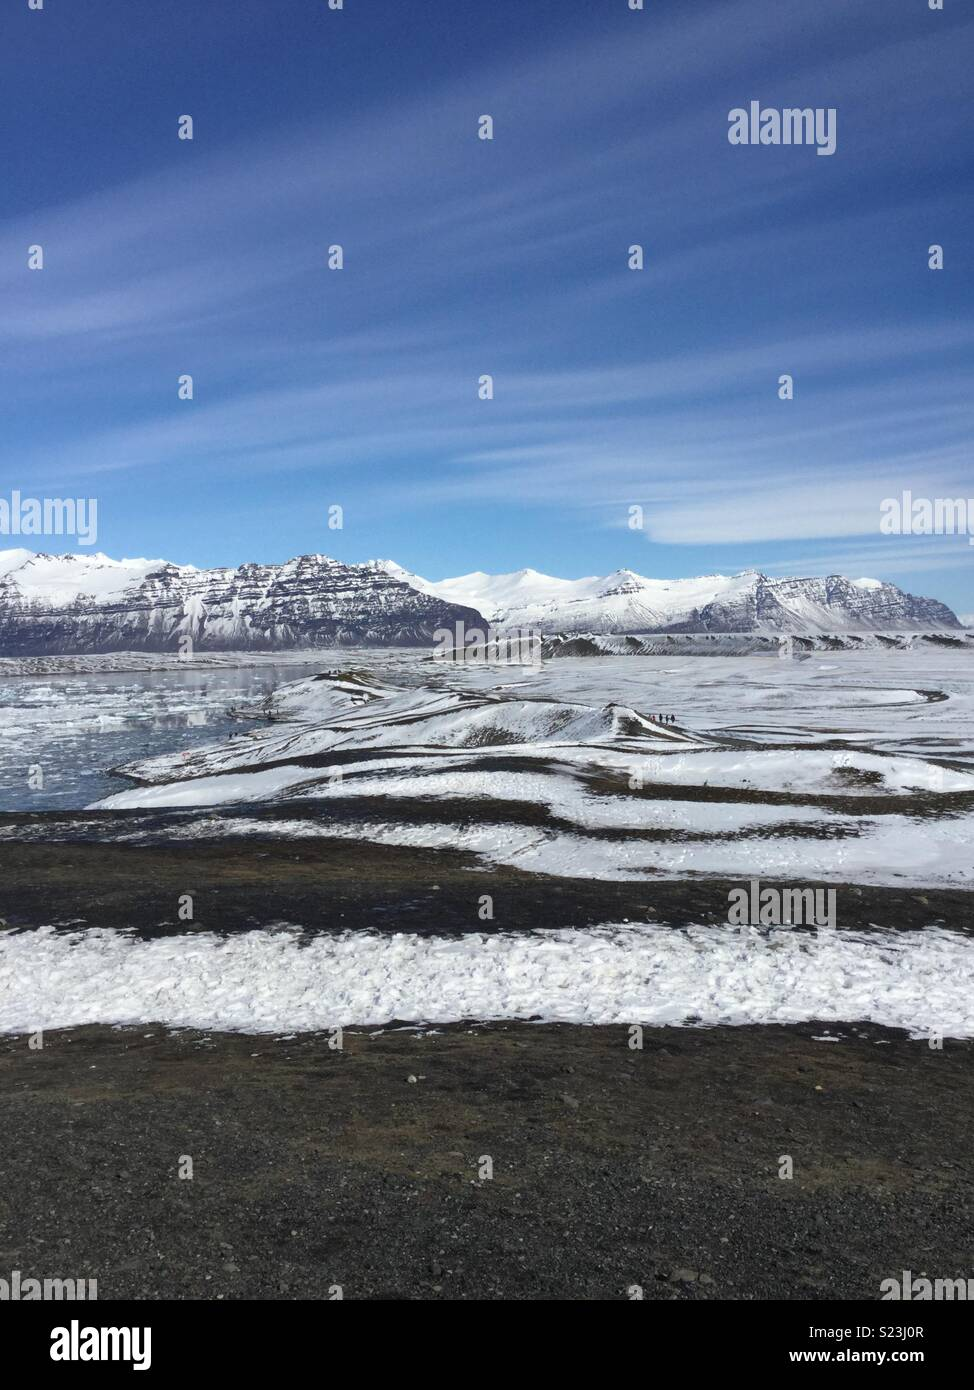 Glorious glacier in Iceland - Stock Image